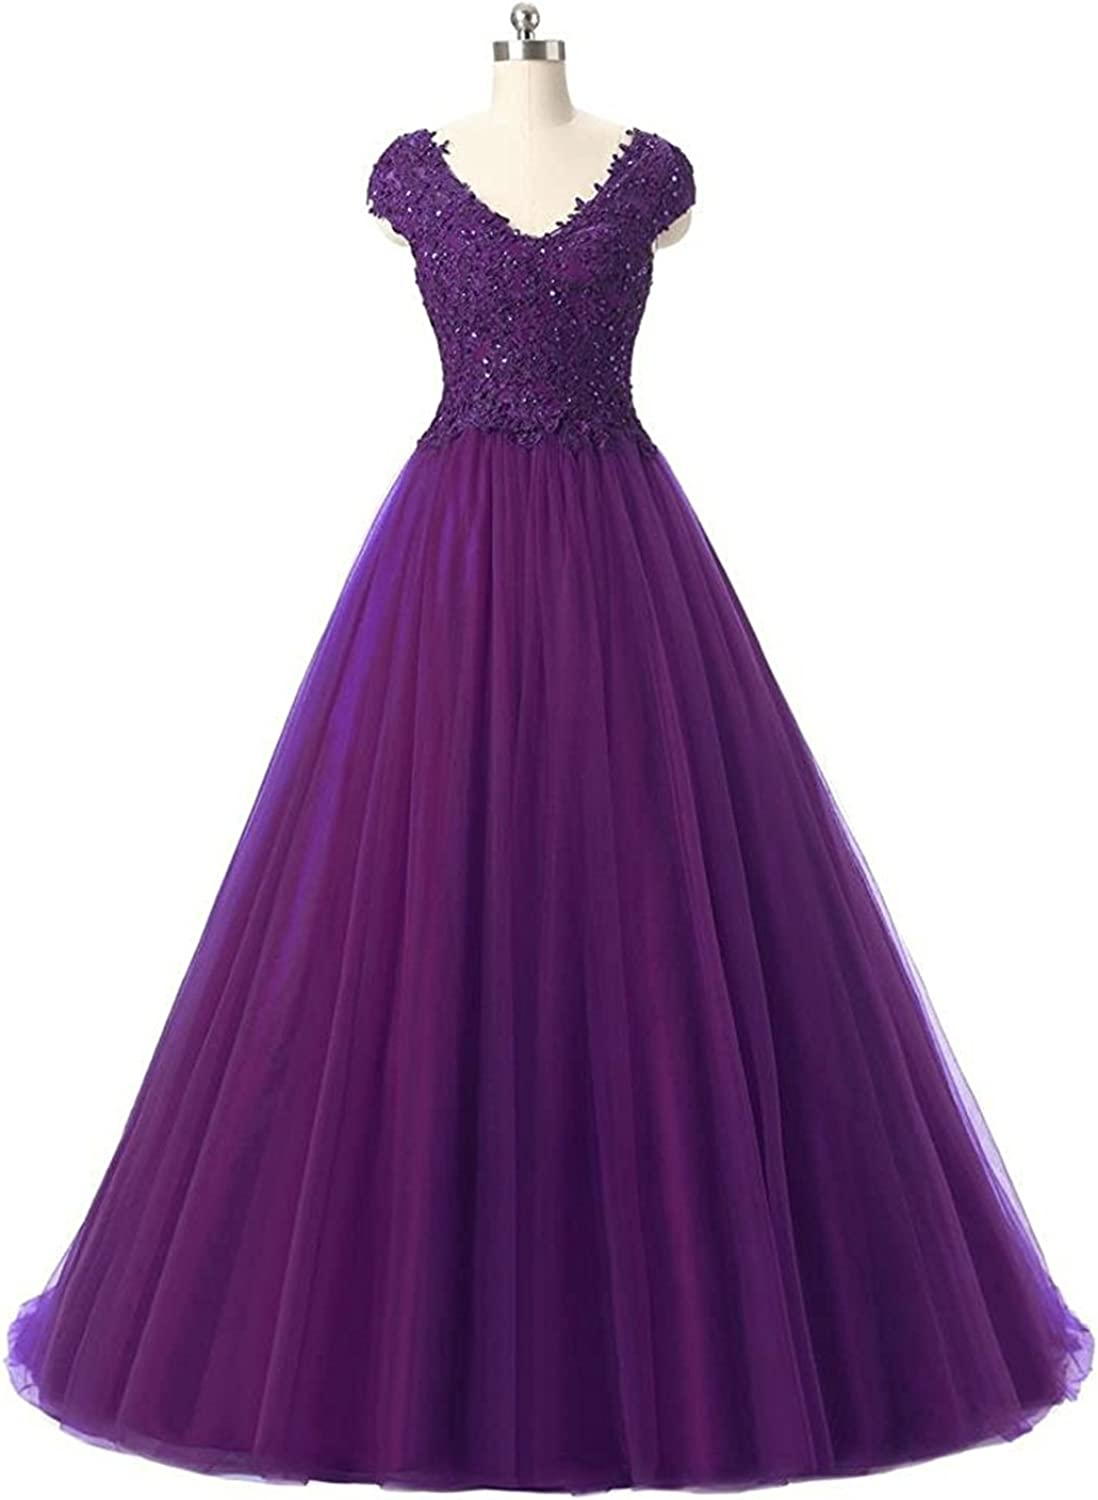 KAMA BRIDAL Women's Lace Applique Prom Dresses Long 2017 V Neck Beading Evening Ball Gown